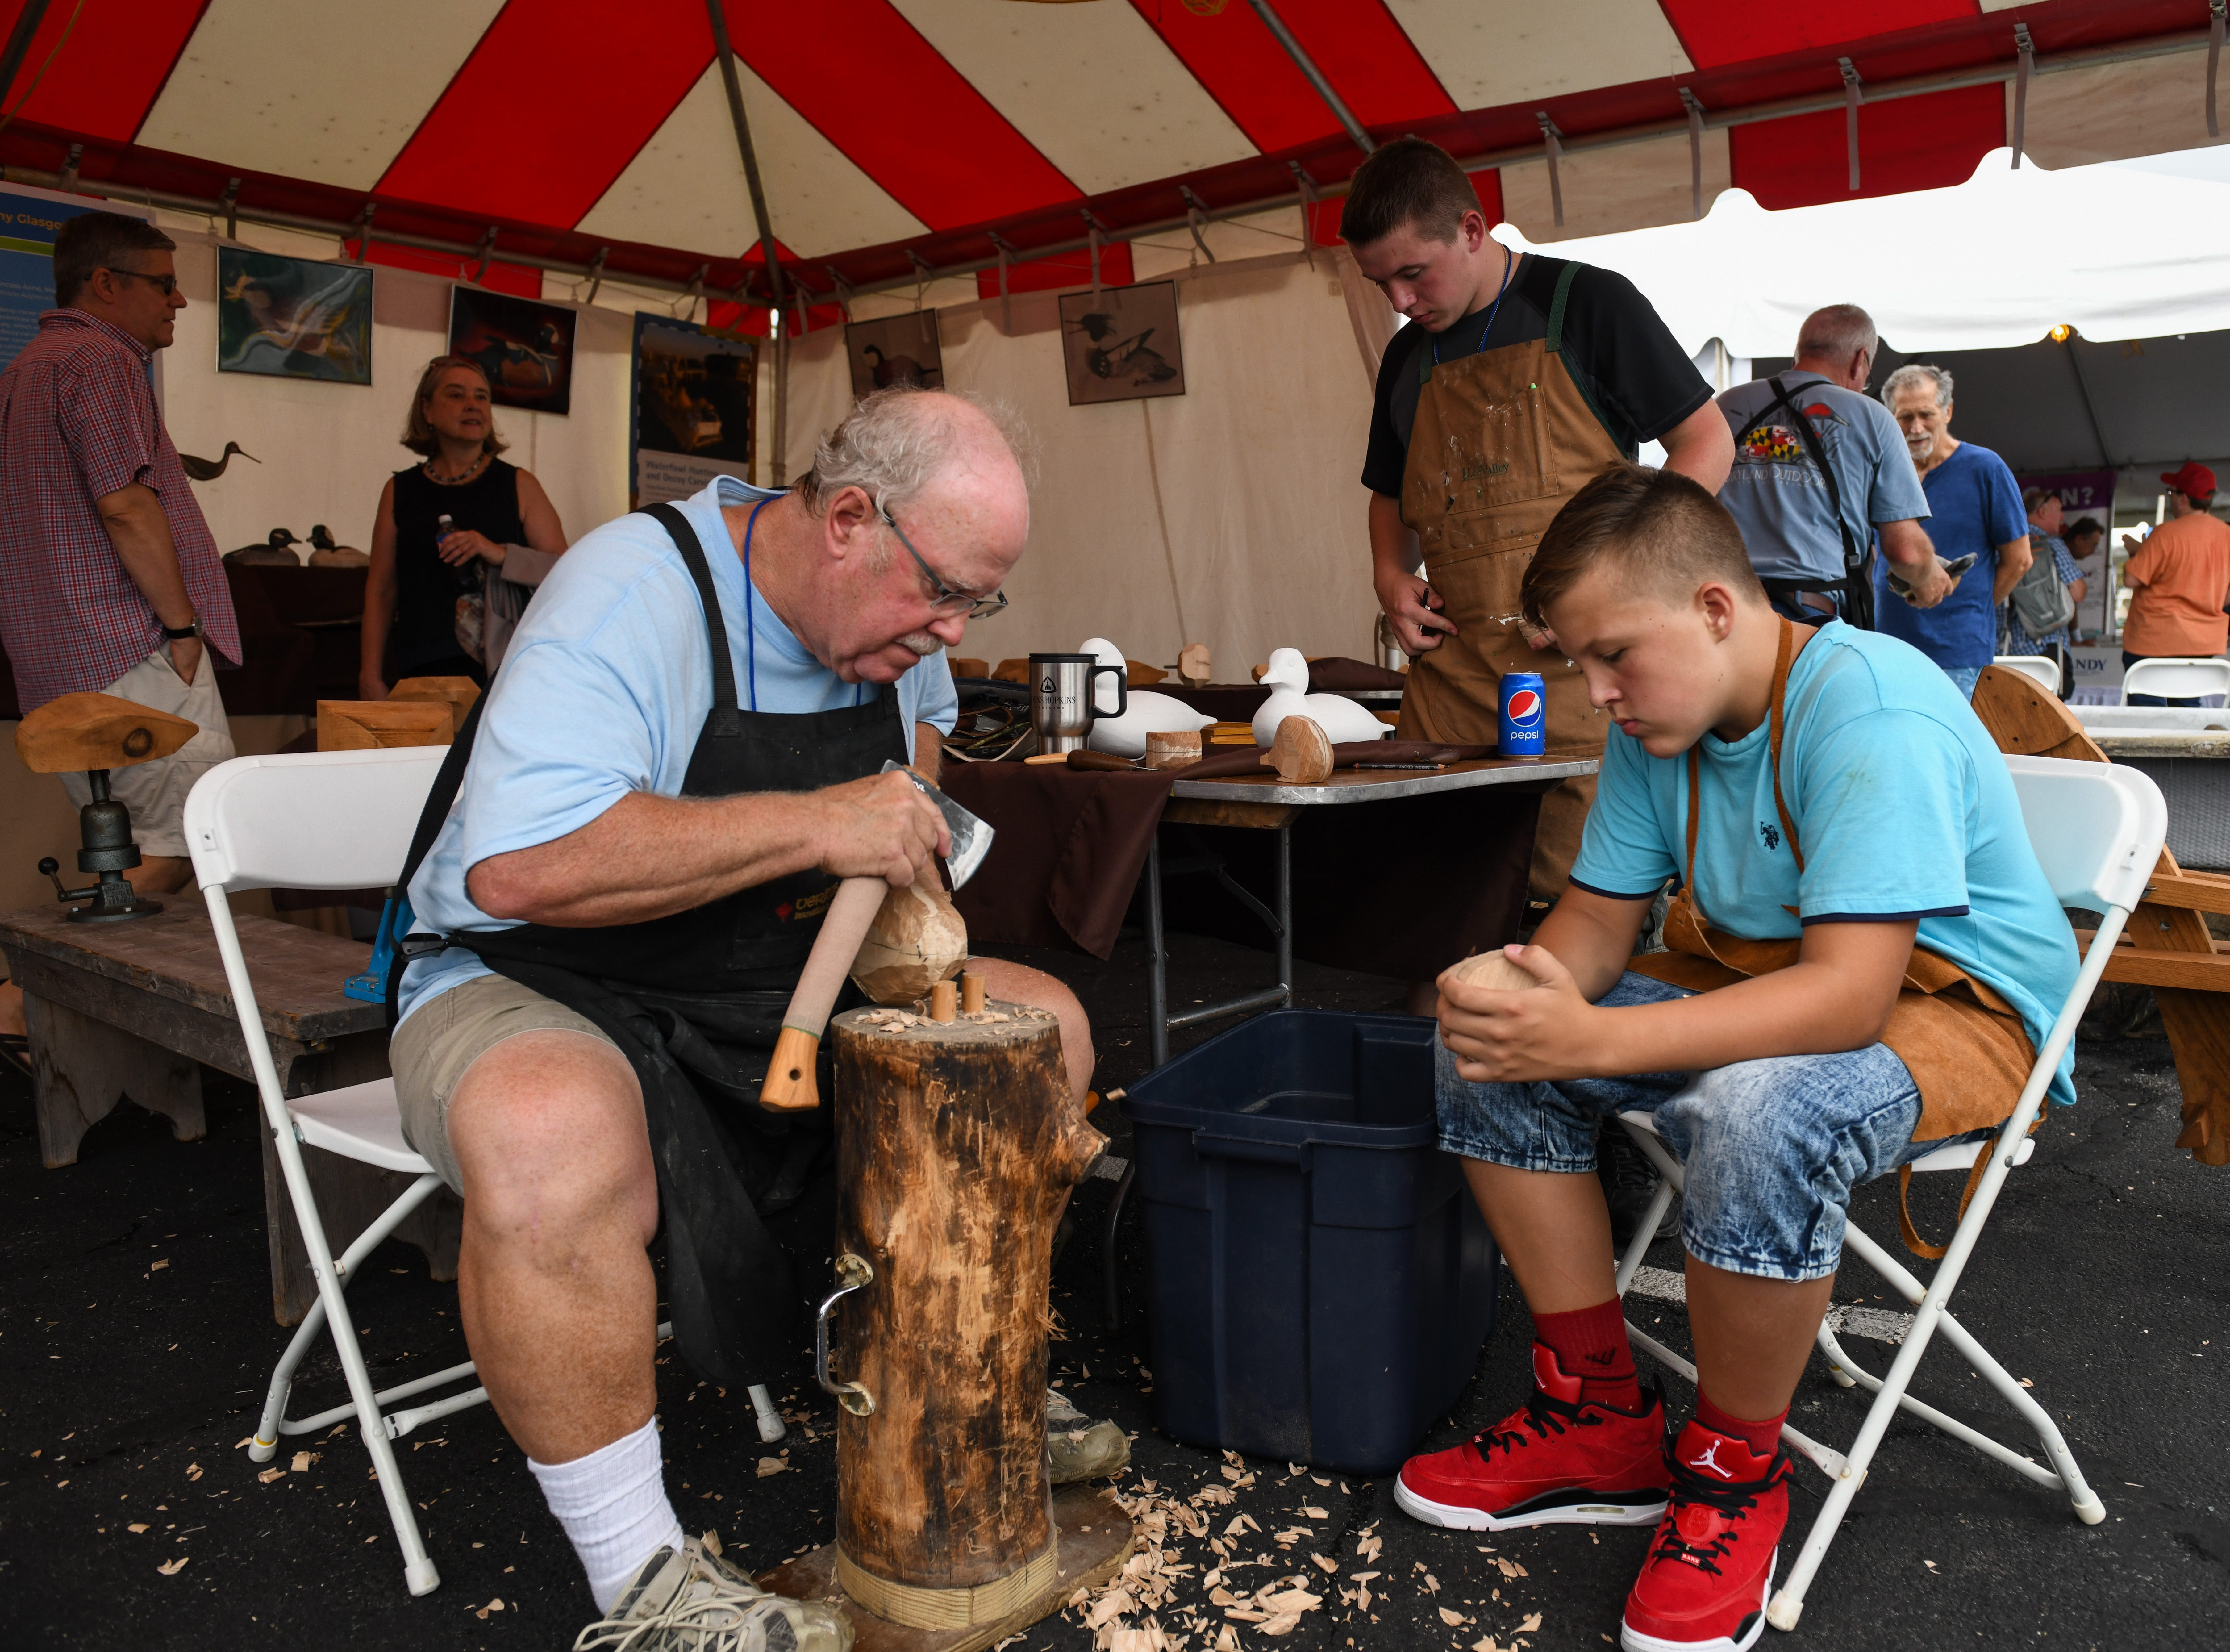 Master carver Rich Smokers and apprentice Wyatt Lowe carve at the National Folk Festival in Salisbury on Saturday, Sept. 8.